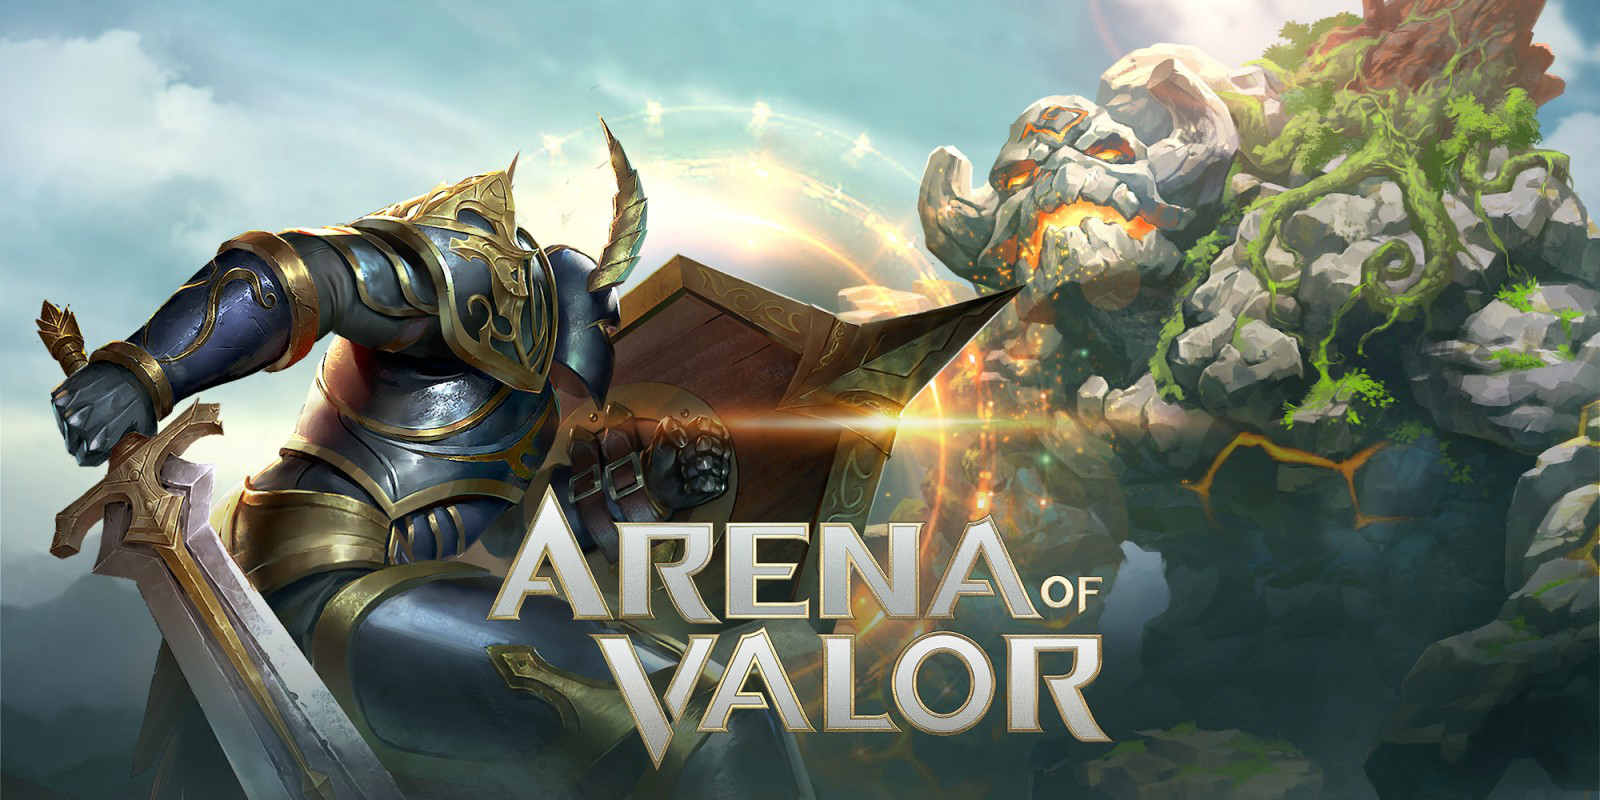 stavki na Arena of Valor kibersport